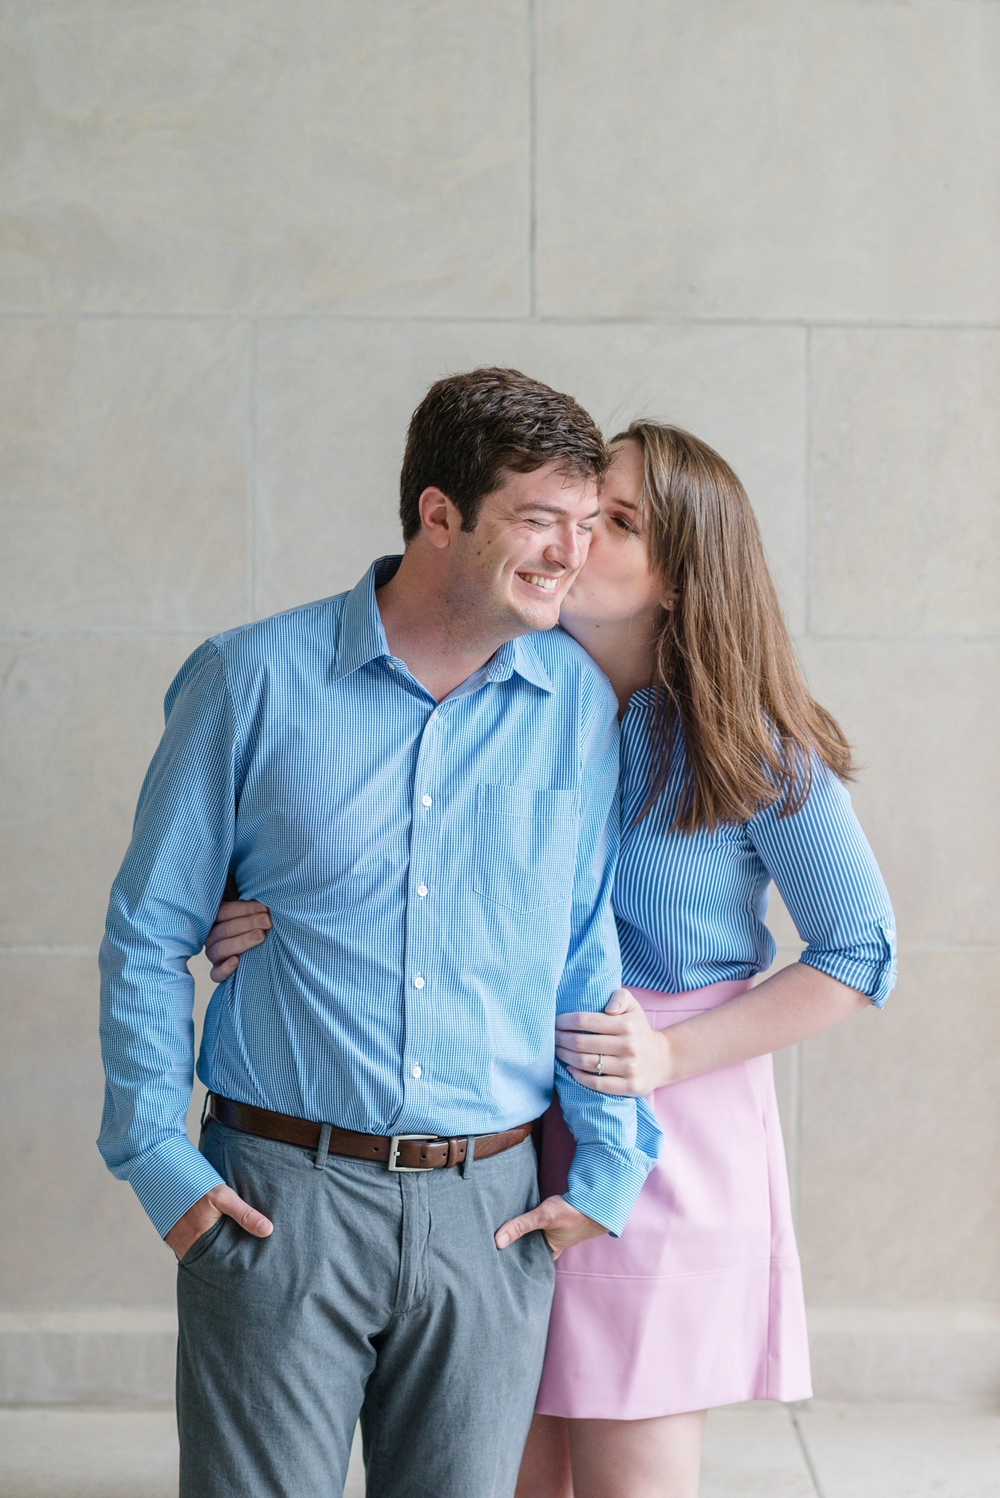 Miami University Wedding and Engagement Photography by AndreaBelleStudios.com